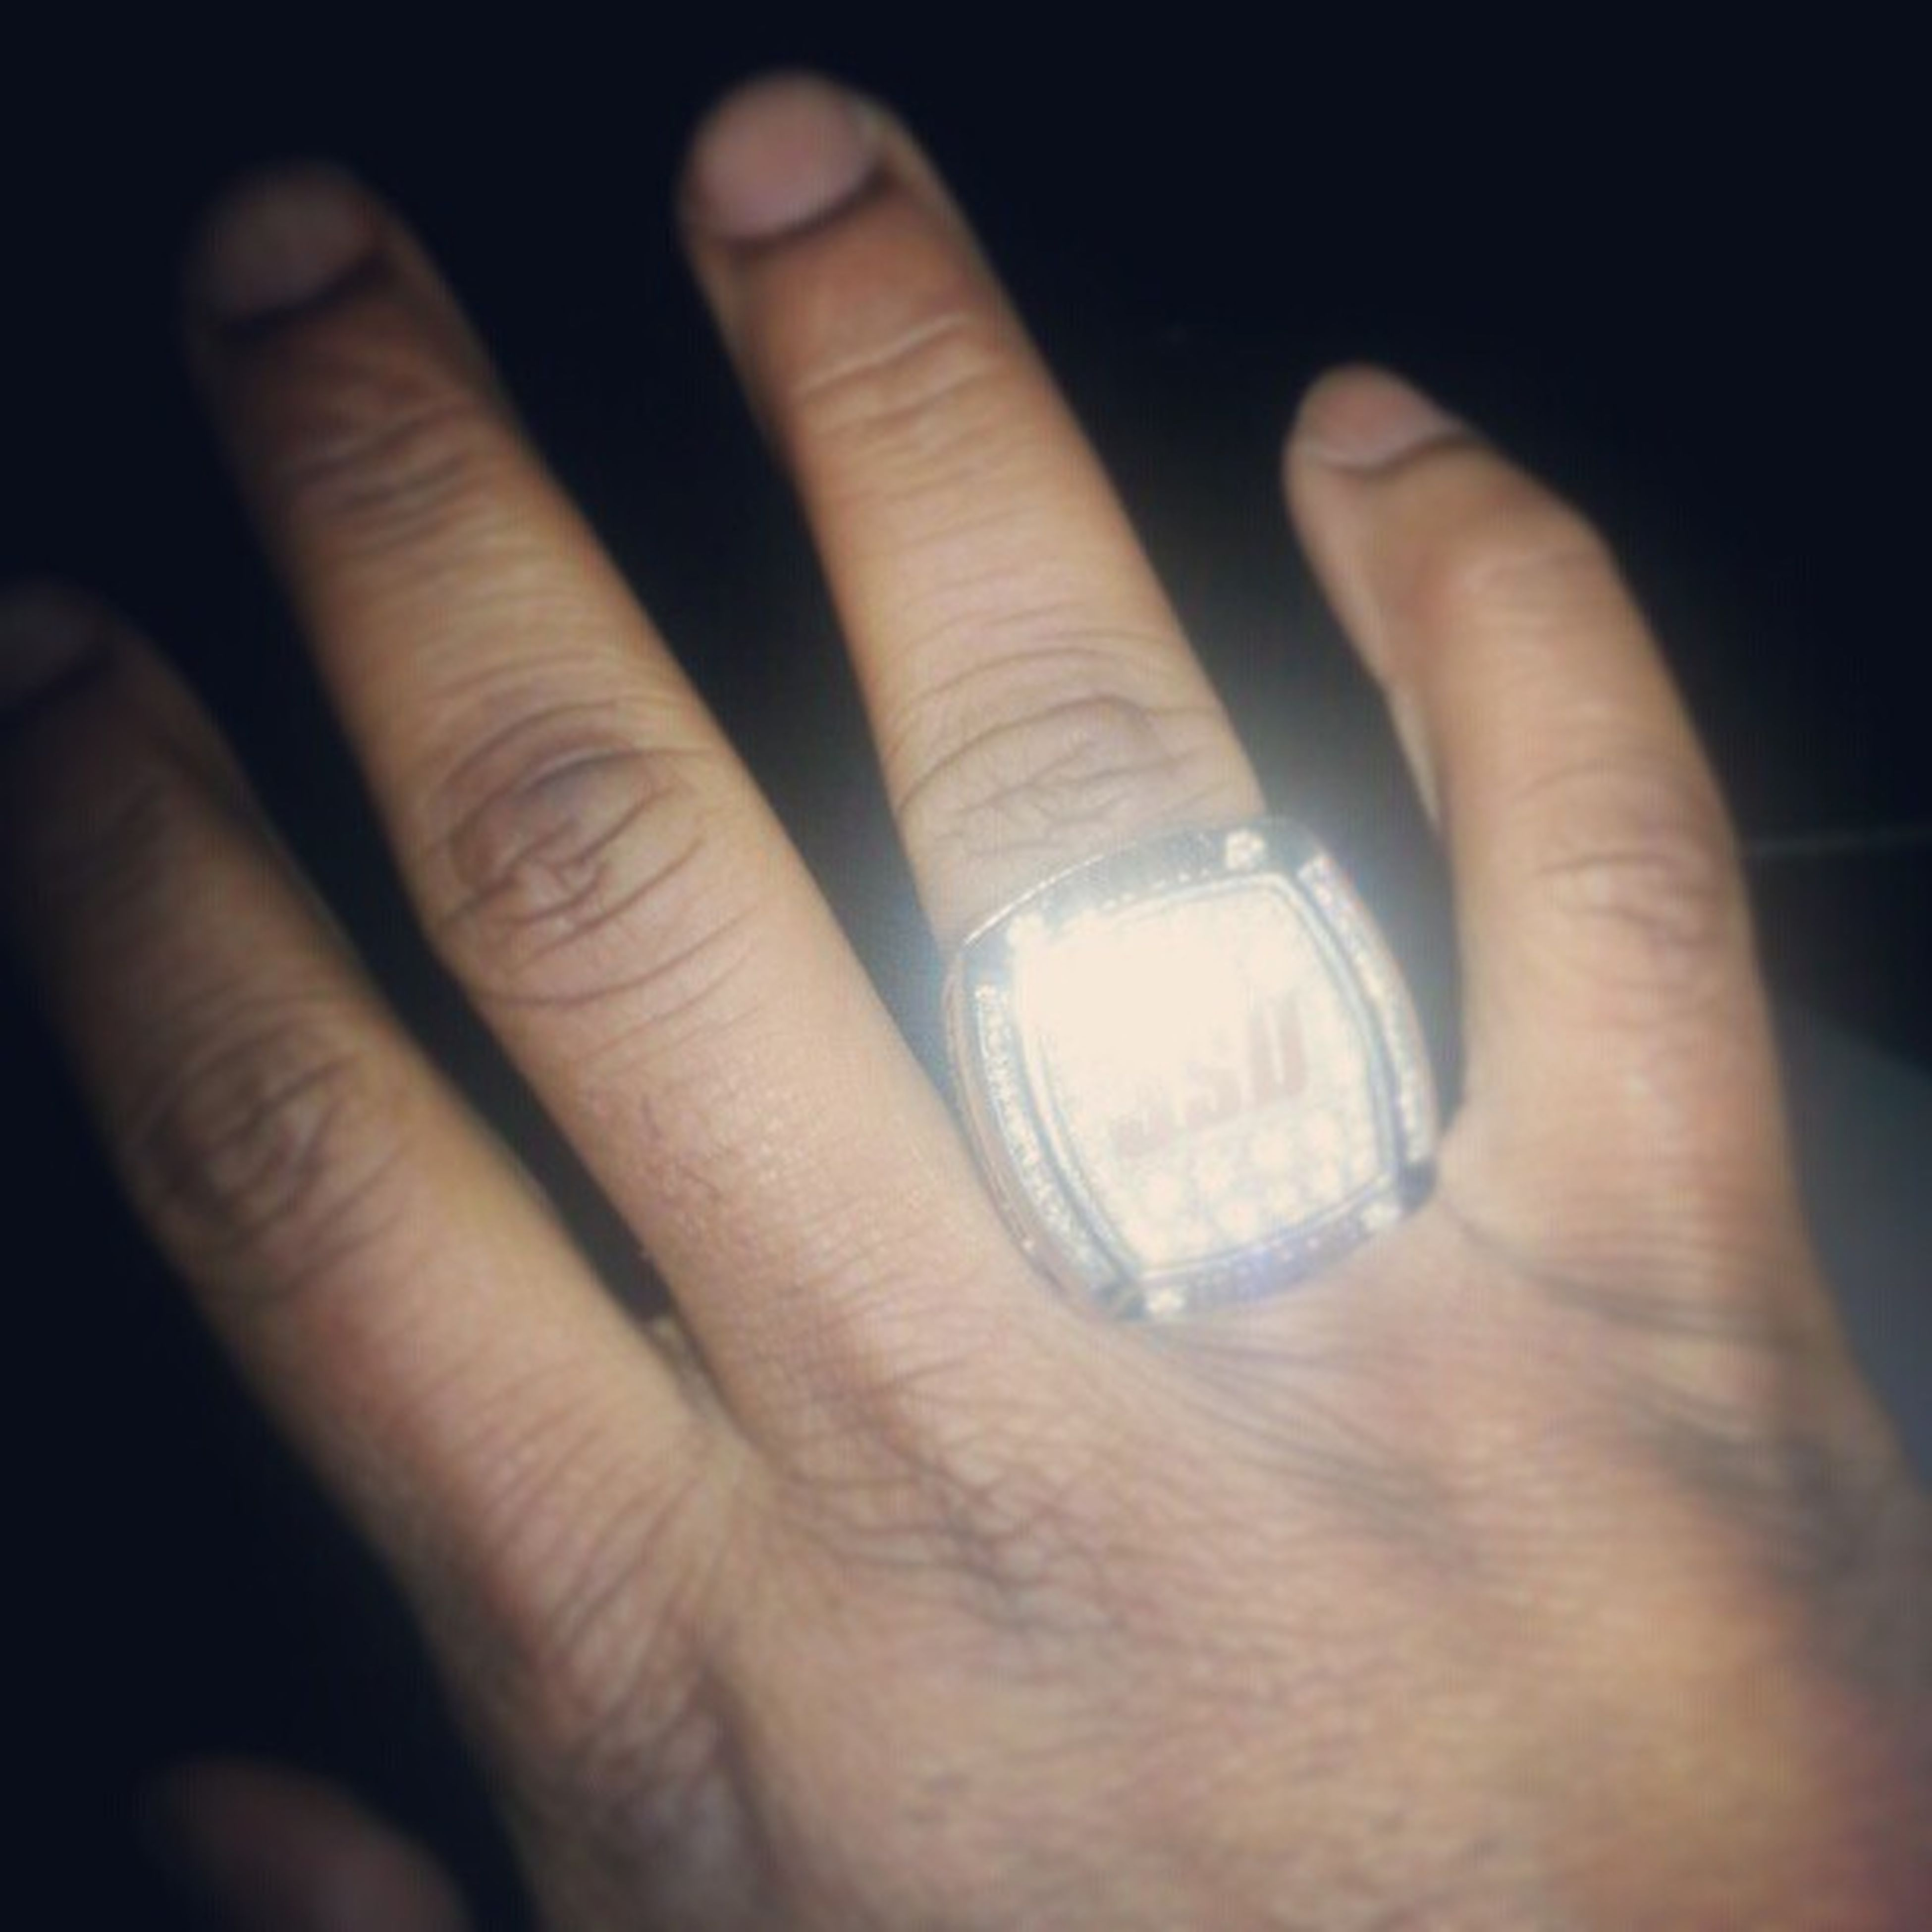 person, part of, human finger, holding, cropped, close-up, indoors, unrecognizable person, personal perspective, focus on foreground, showing, studio shot, ring, glass - material, lifestyles, leisure activity, reflection